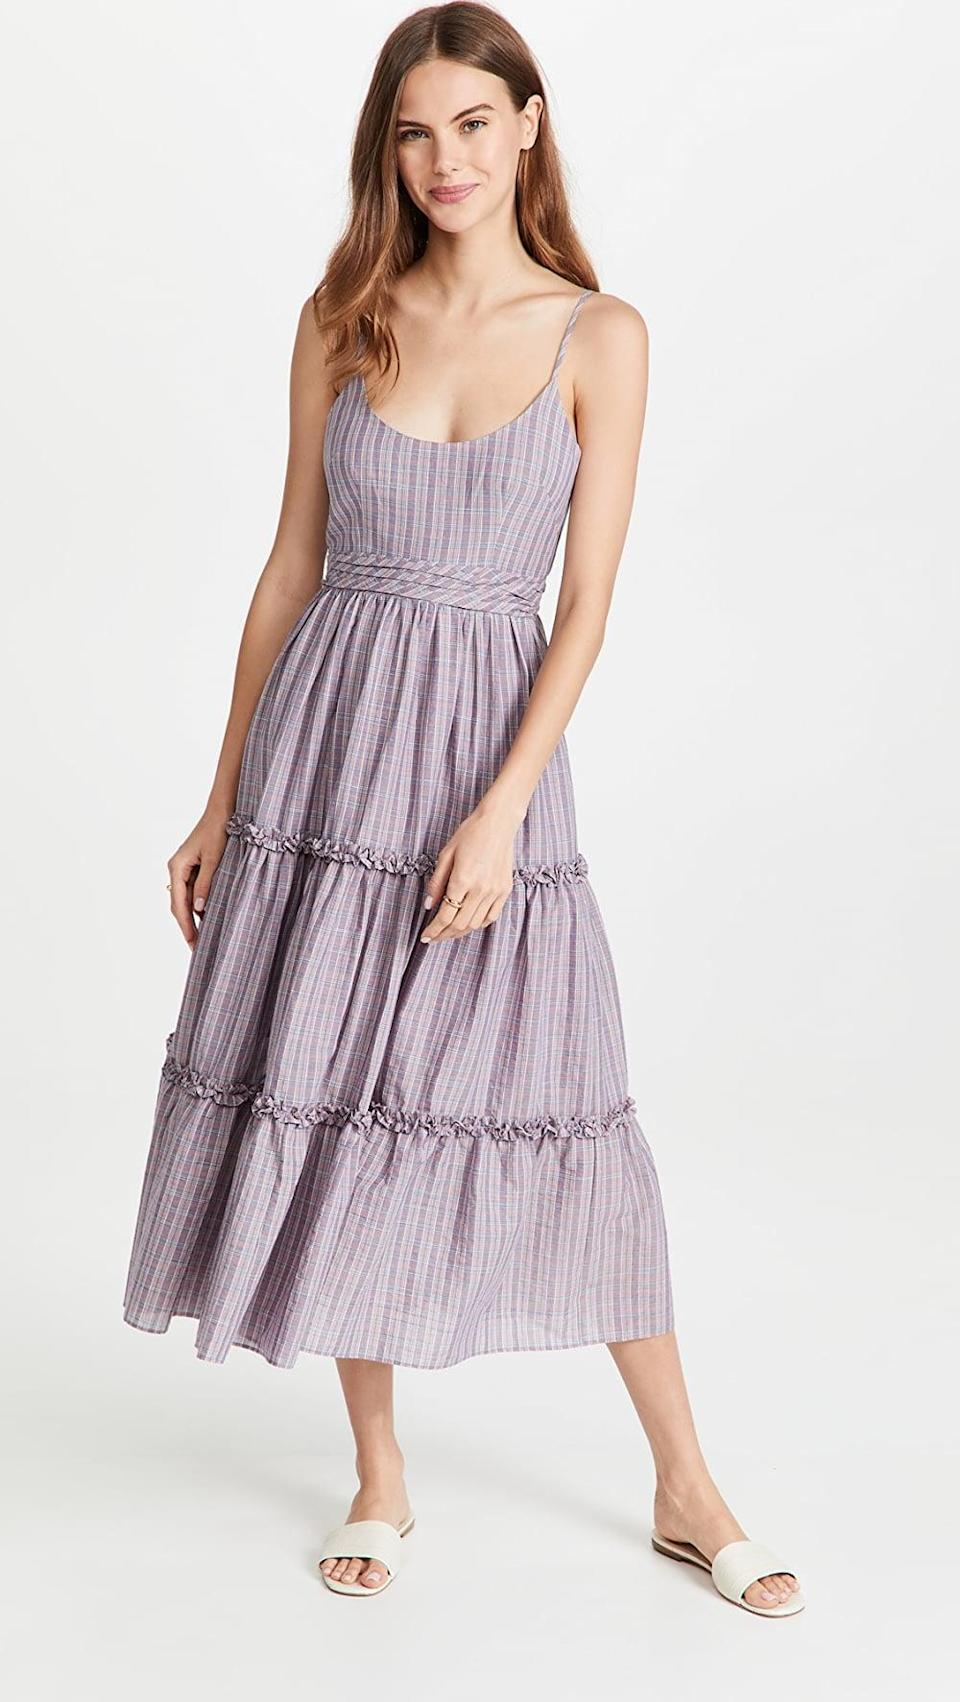 <p>If you're in the market for a longer sundress, this <span>Cinq a Sept Plaid Belle Dress</span> ($395) is for you. I love the purple hue.</p>